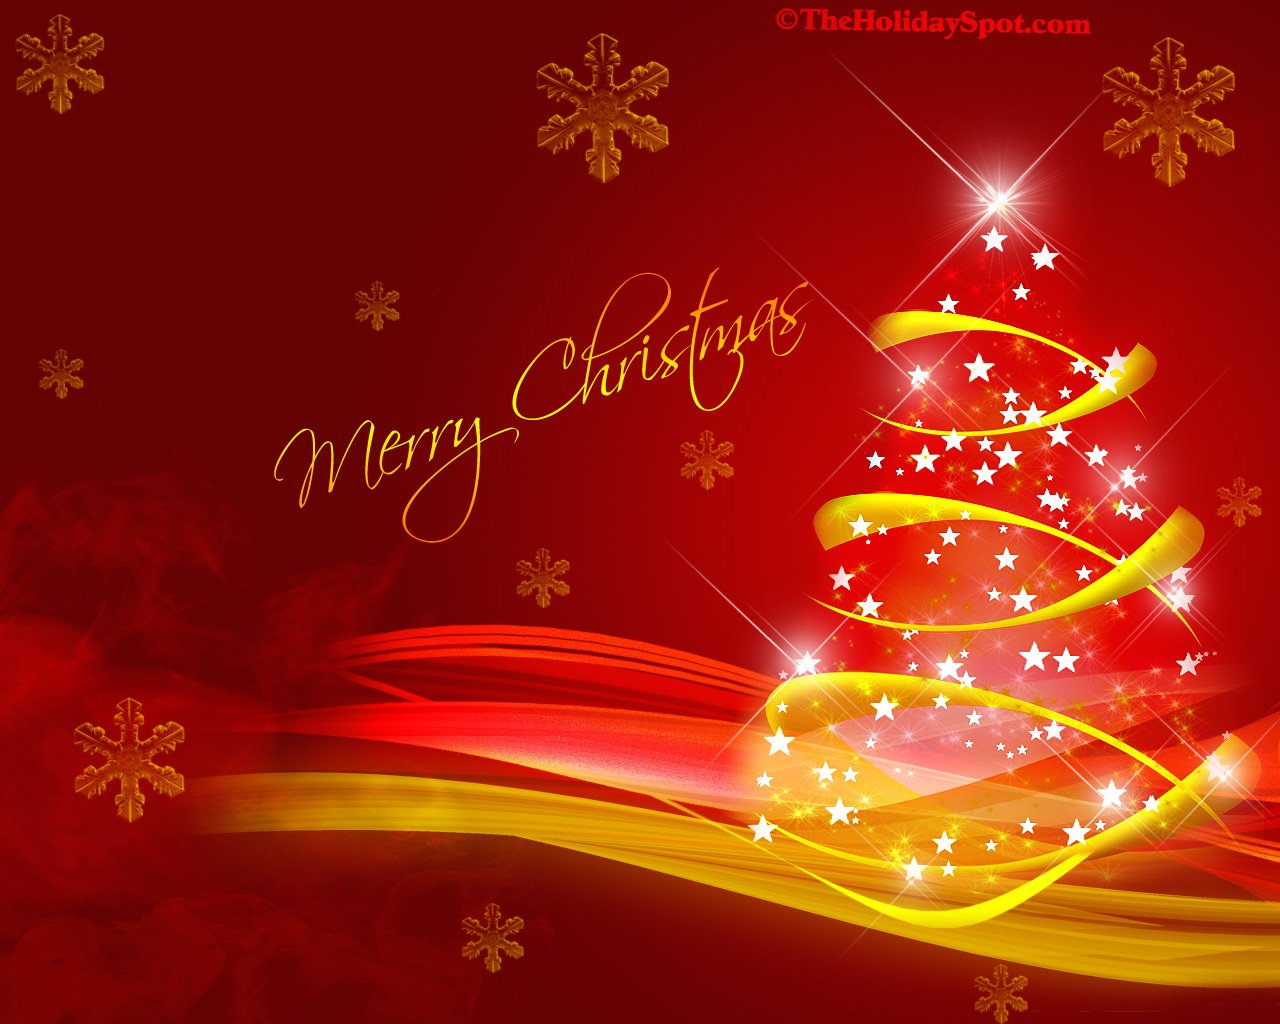 1280x1024 Christmas Wallpapers   1280x1024 High quality Christmas tree 1280x1024